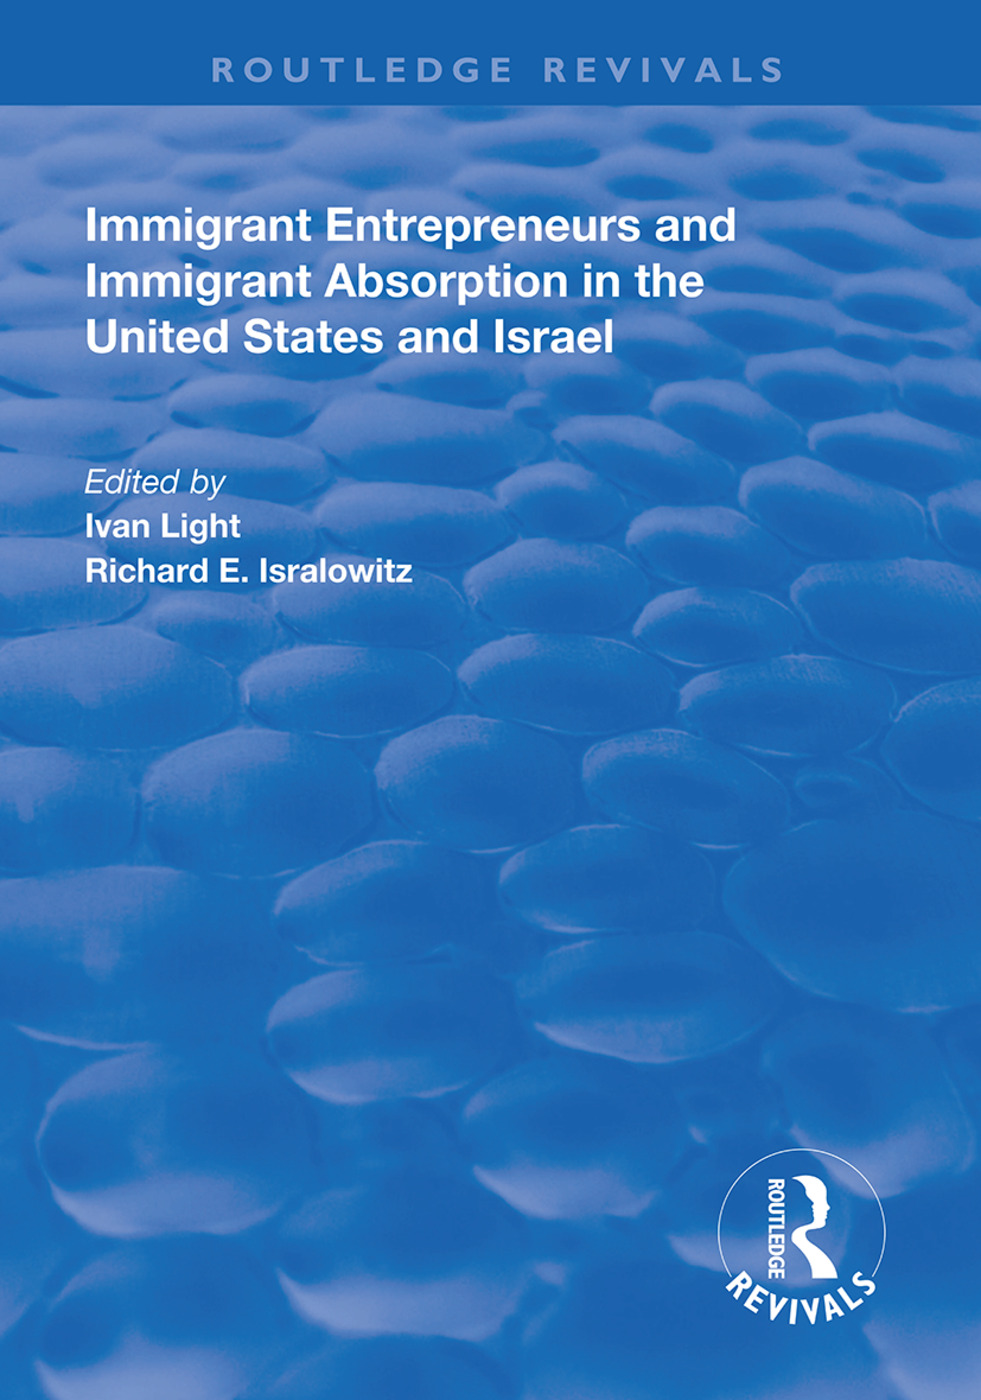 Immigrant Entrepreneurs and Immigrants in the United States and Israel book cover